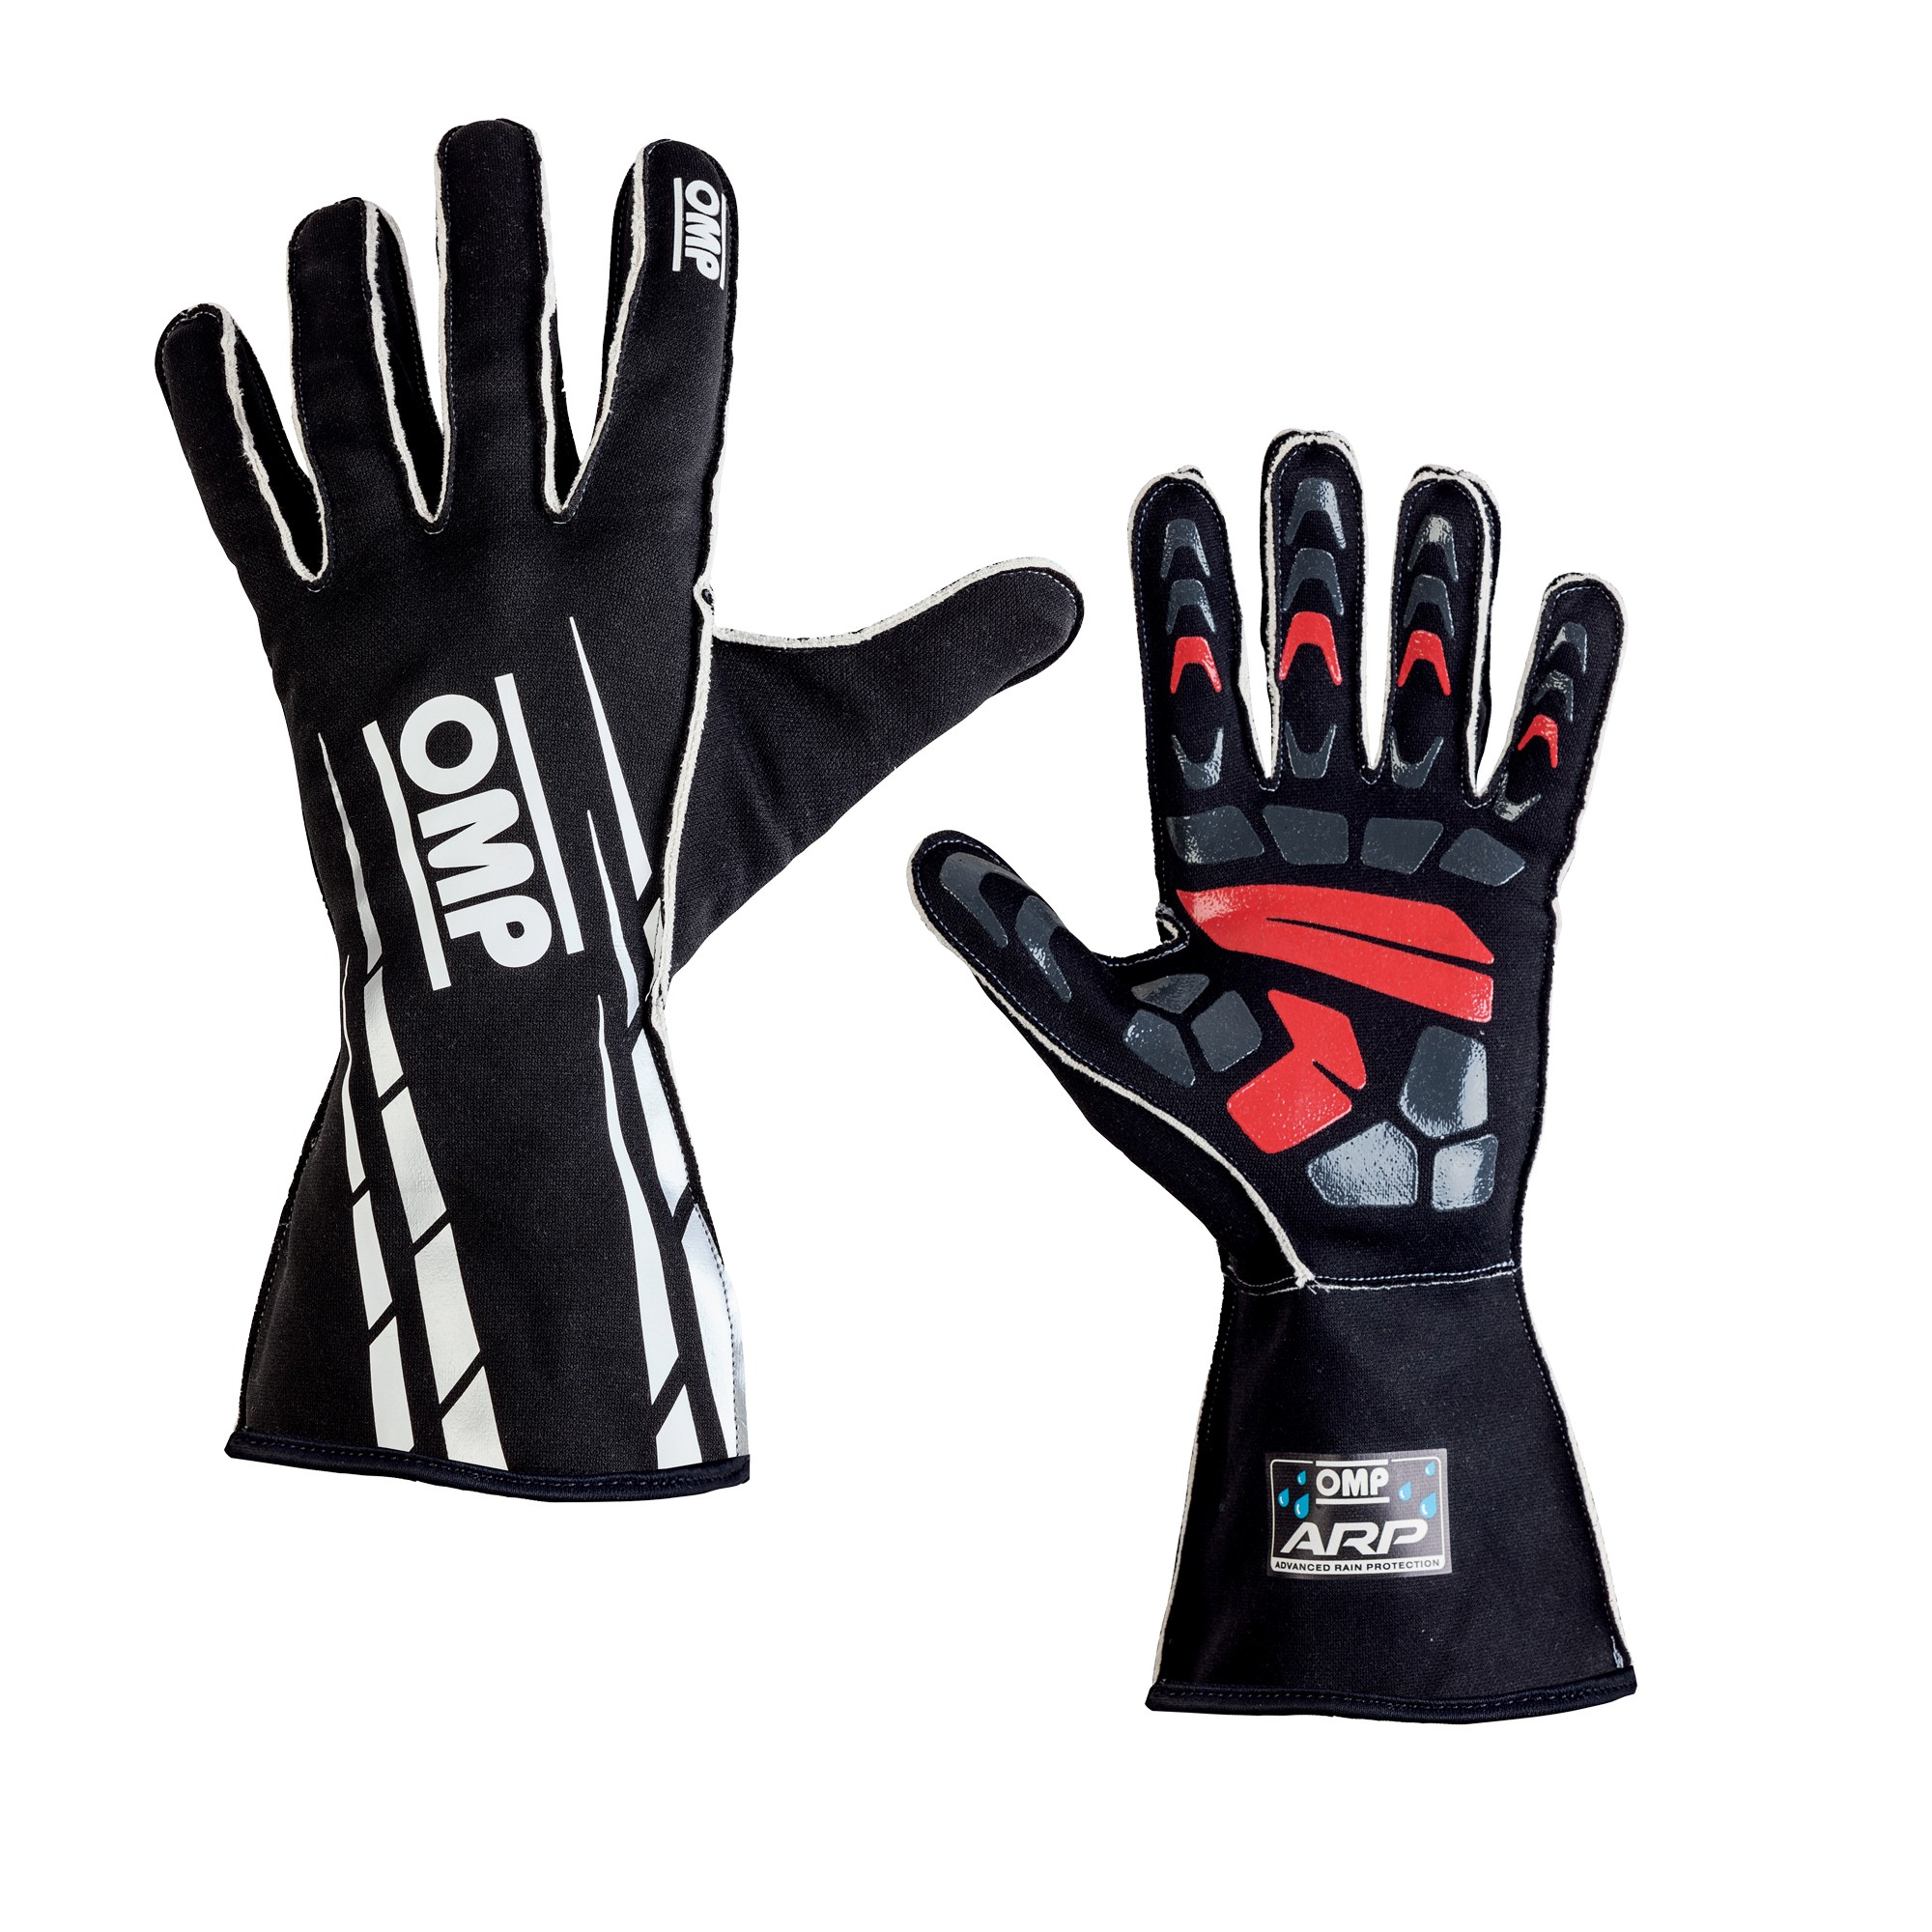 OMP ARP Advanced Rain Proof Glove